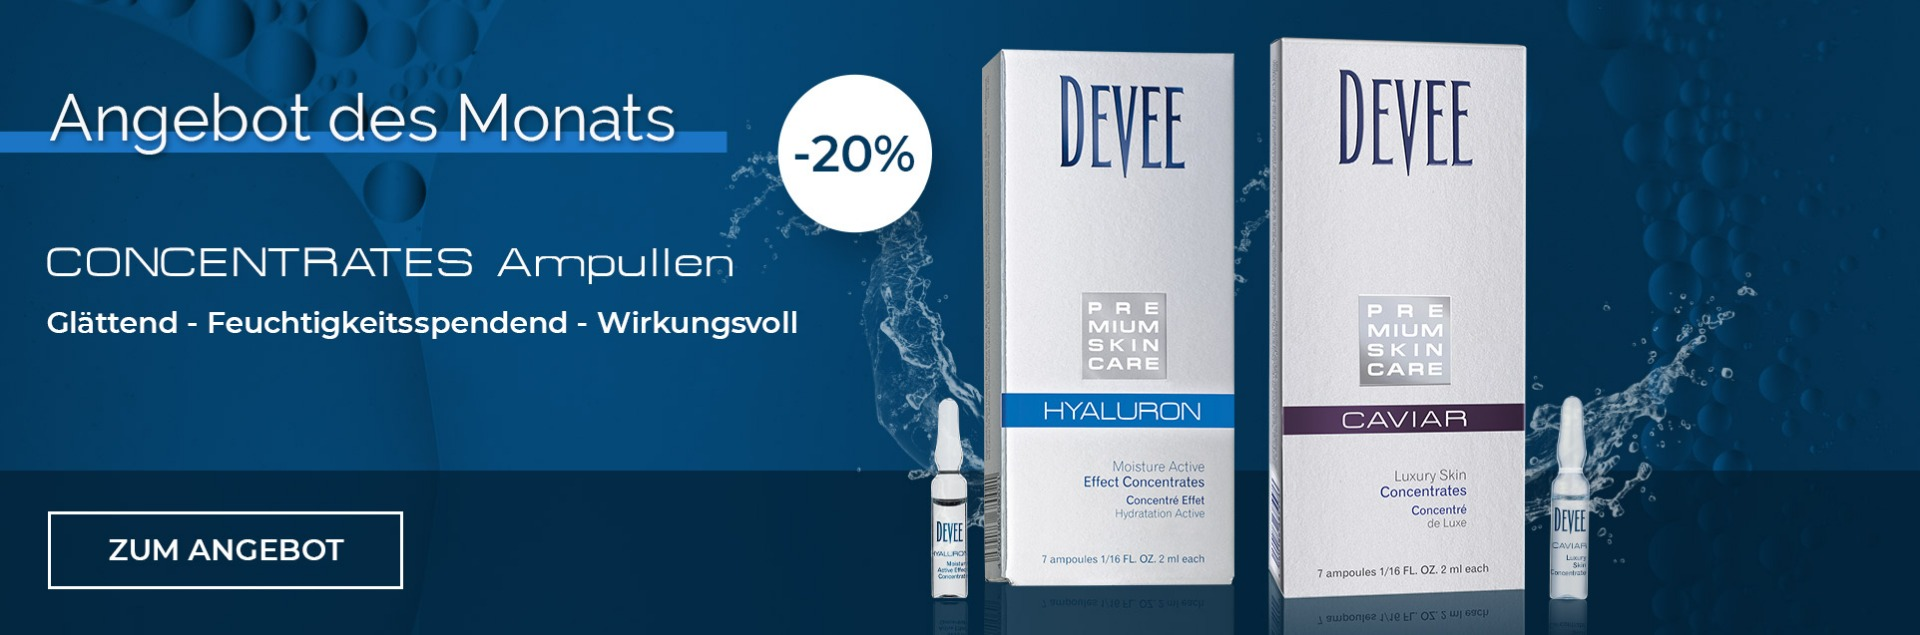 DEVEE Angebot